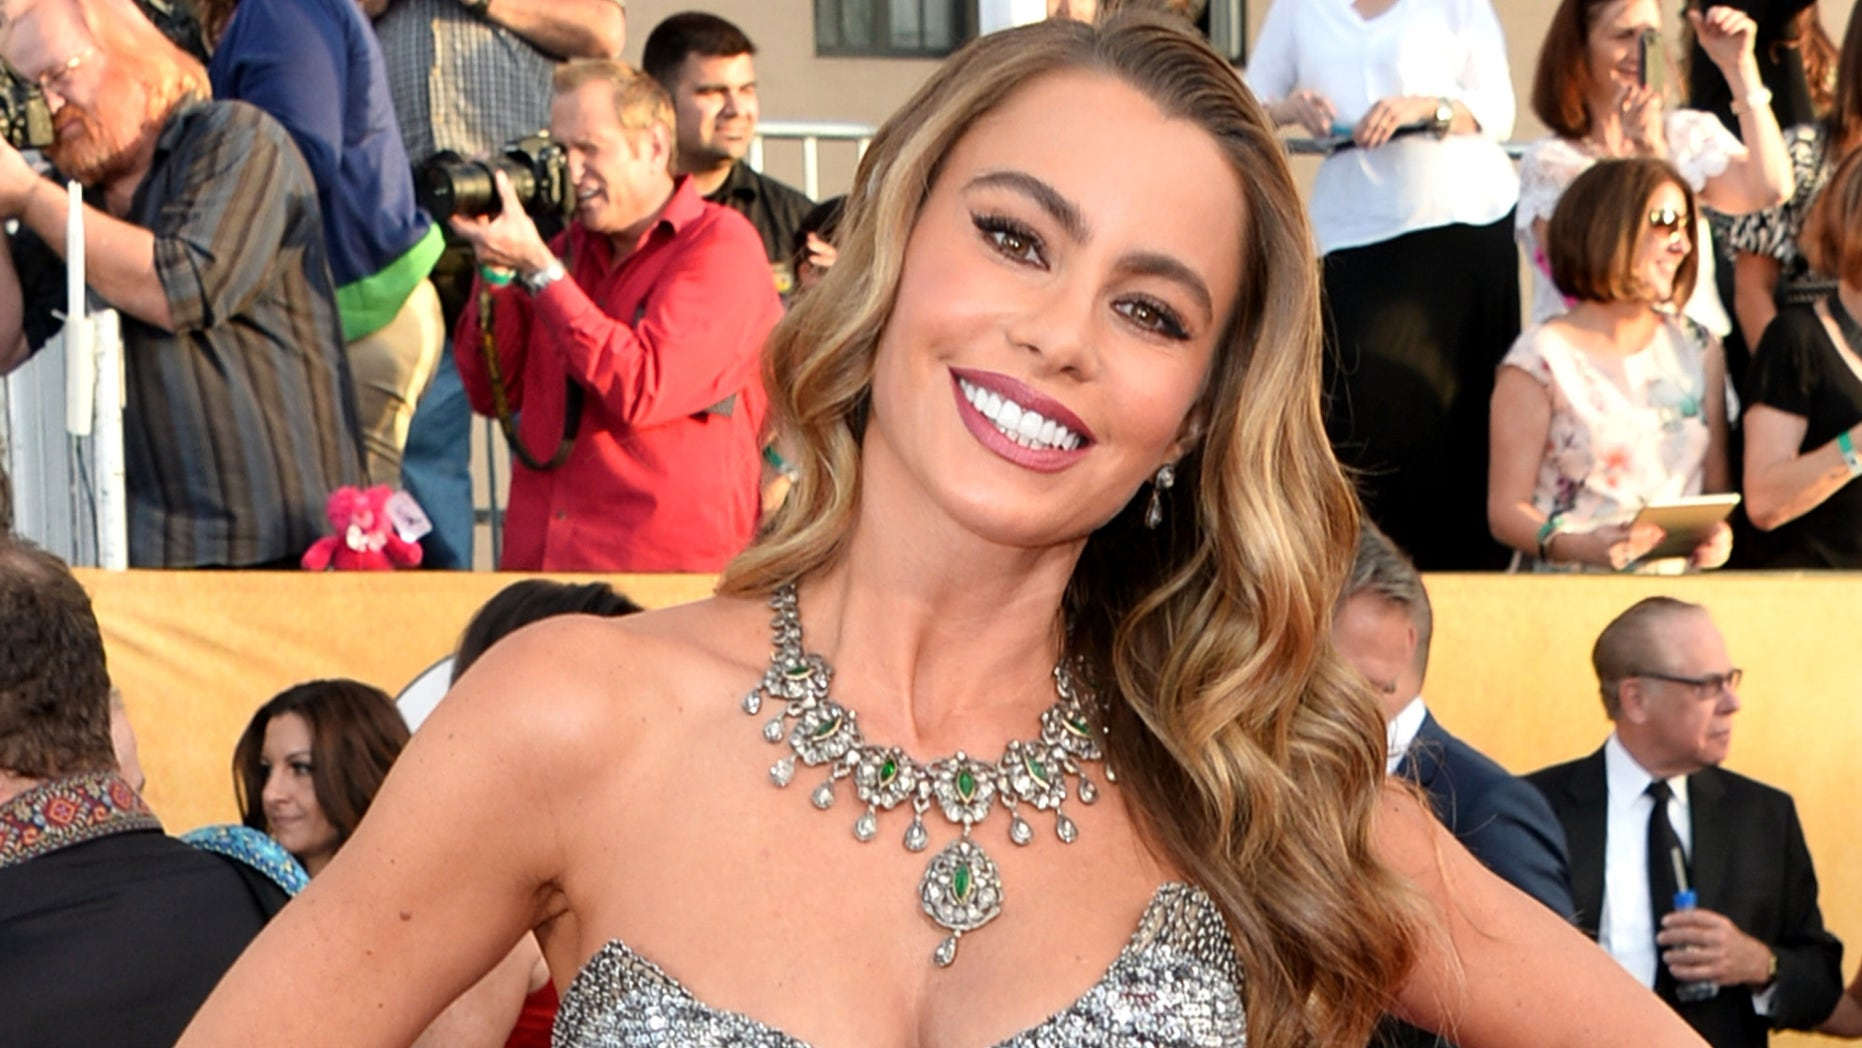 Sofía Vergara attends the 20th Annual Screen Actors Guild Awards on January 18, 2014 in Los Angeles, California.